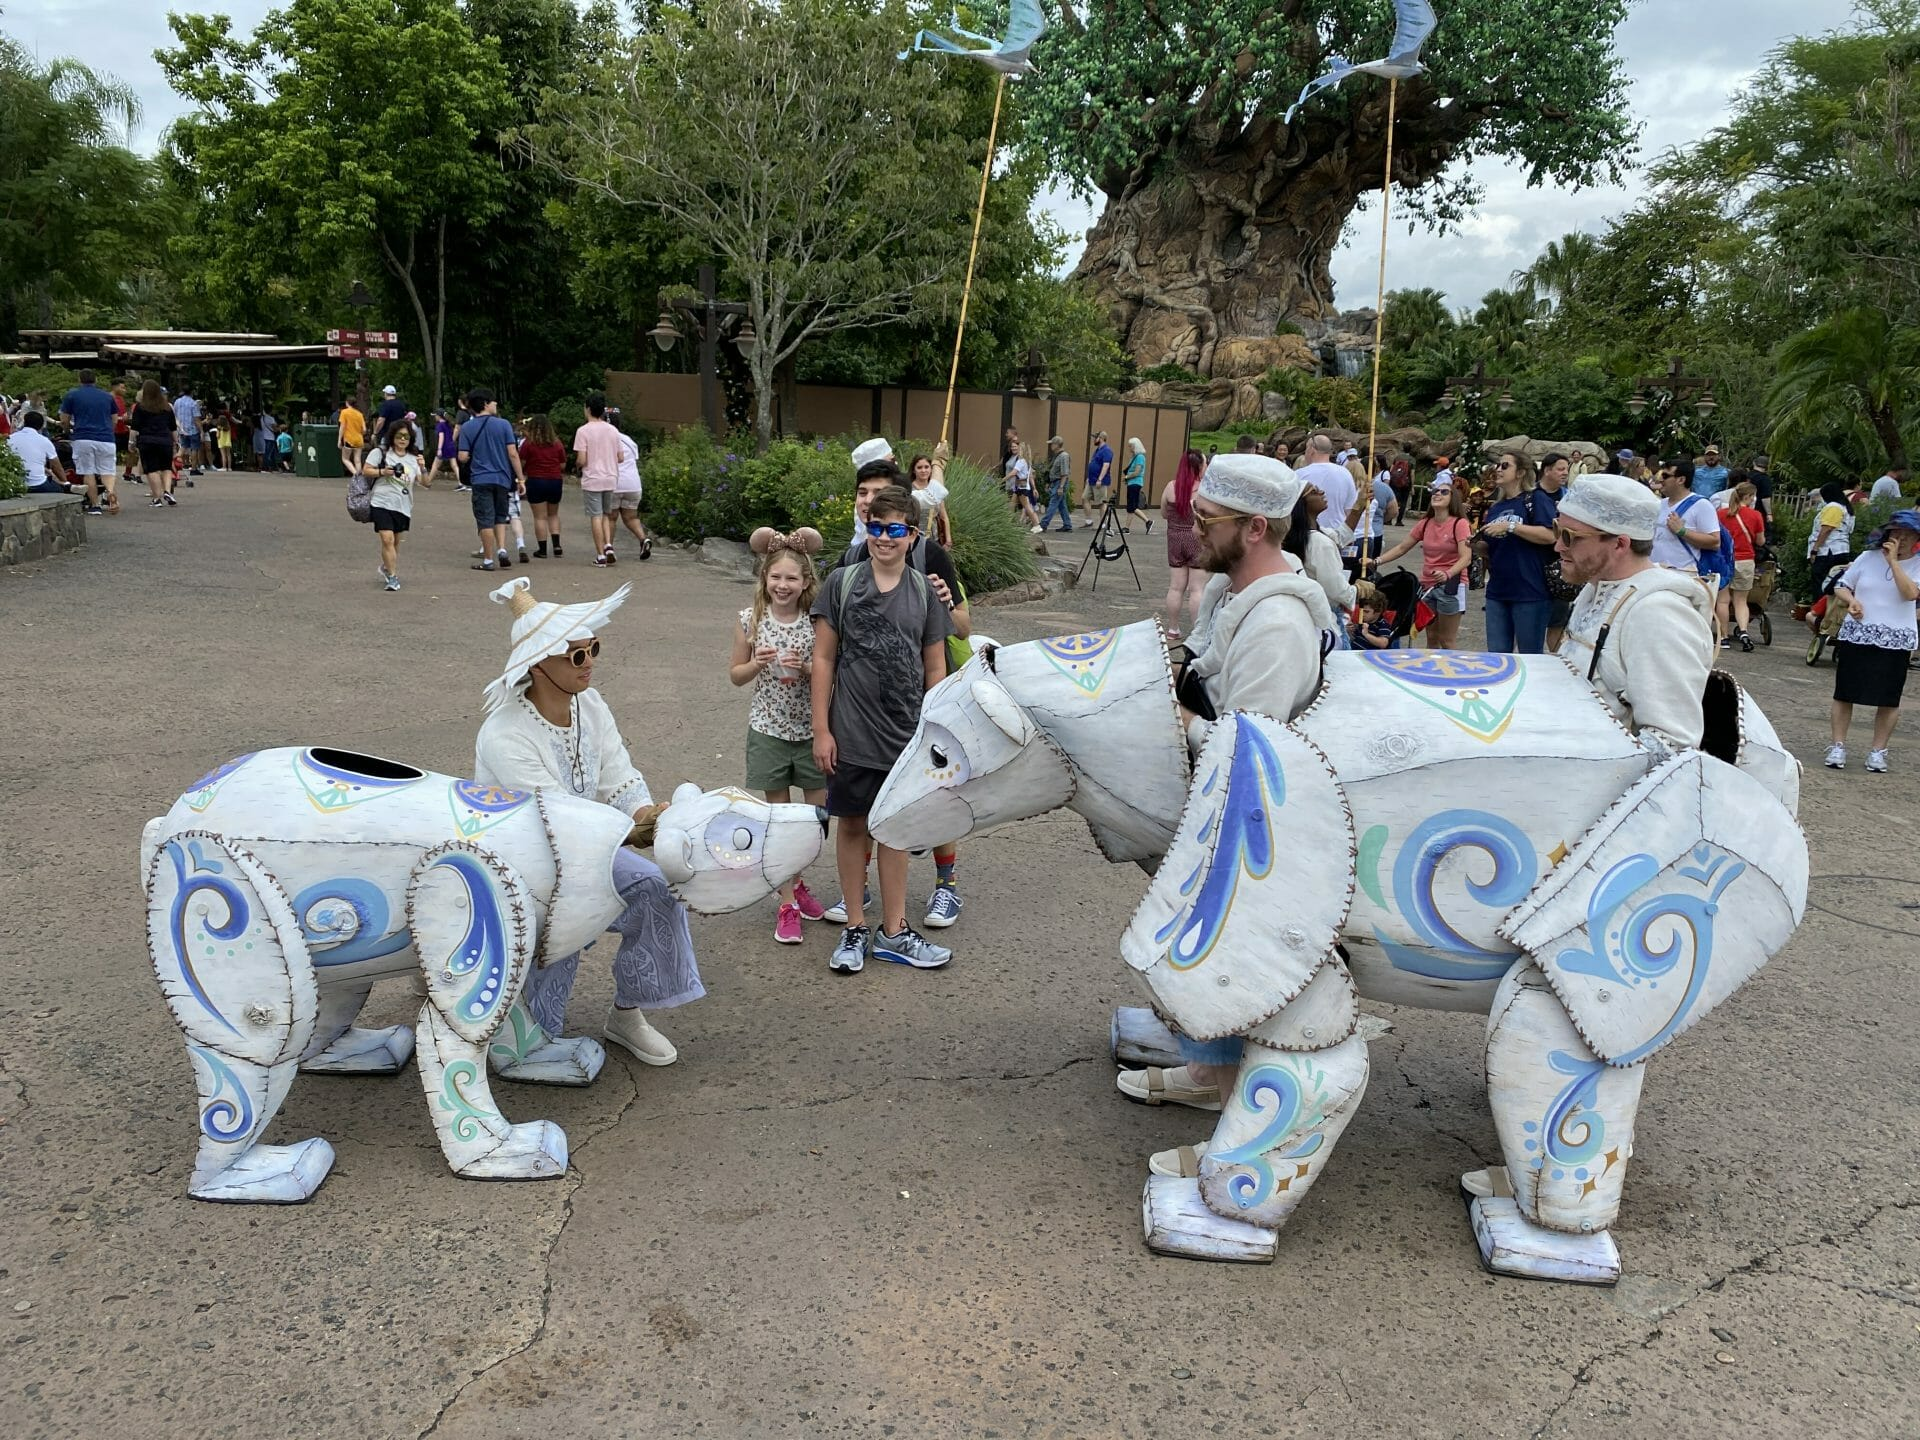 Winter Wonderland and Merry Managerie at Animal Kingdom